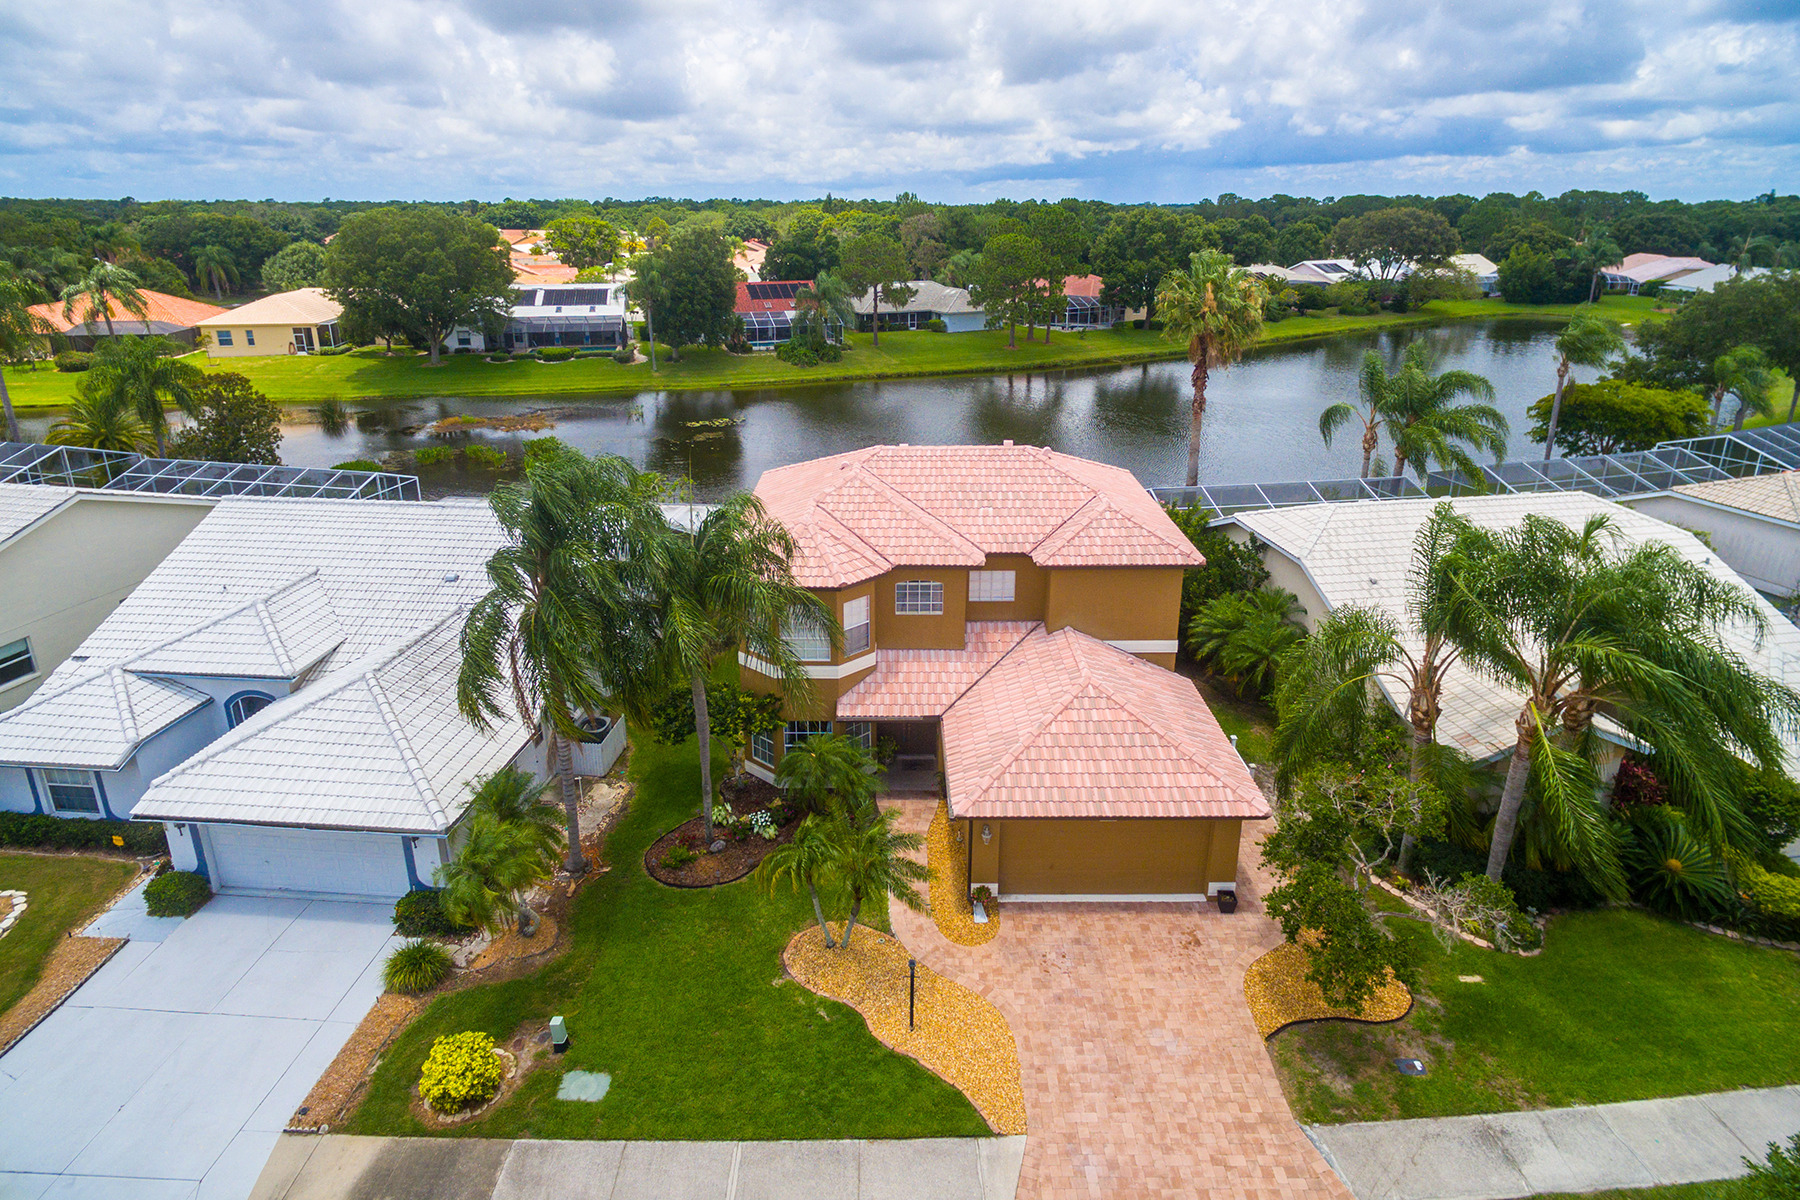 Single Family Home for Sale at DEL SOL VILLAGE AT LONGWOOD RUN 5734 Beaurivage Ave Sarasota, Florida, 34243 United States